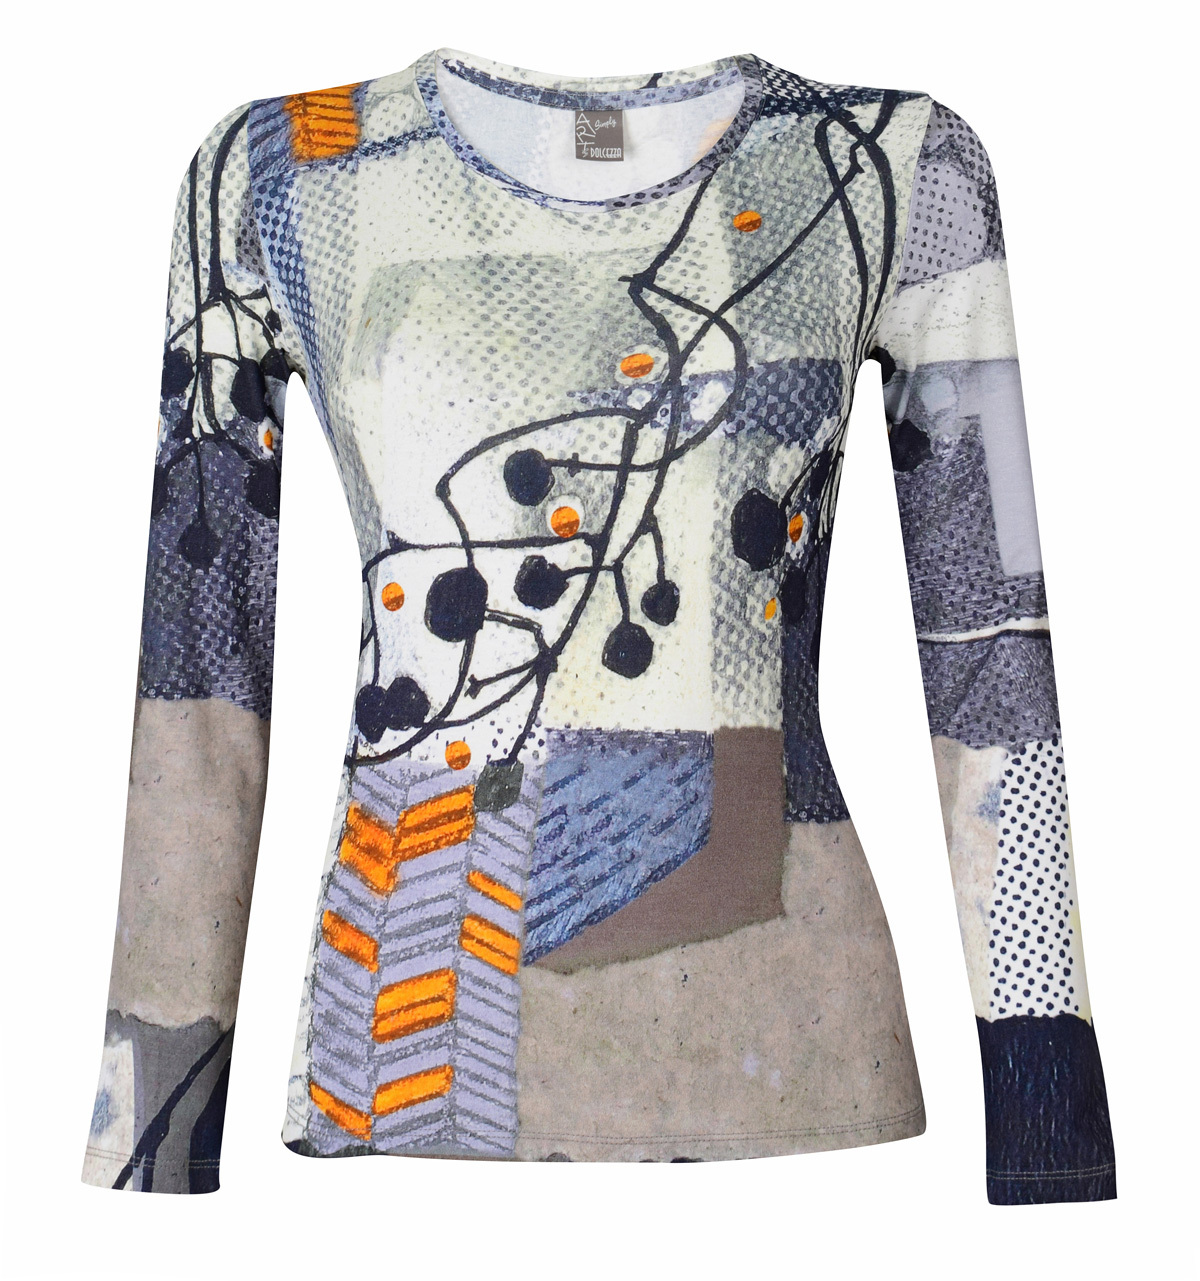 Simply Art Dolcezza: Incredibly Dandy Dragonfly Abstract Art Tunic (1 Left!) Dolcezza_SimplyArt_59690